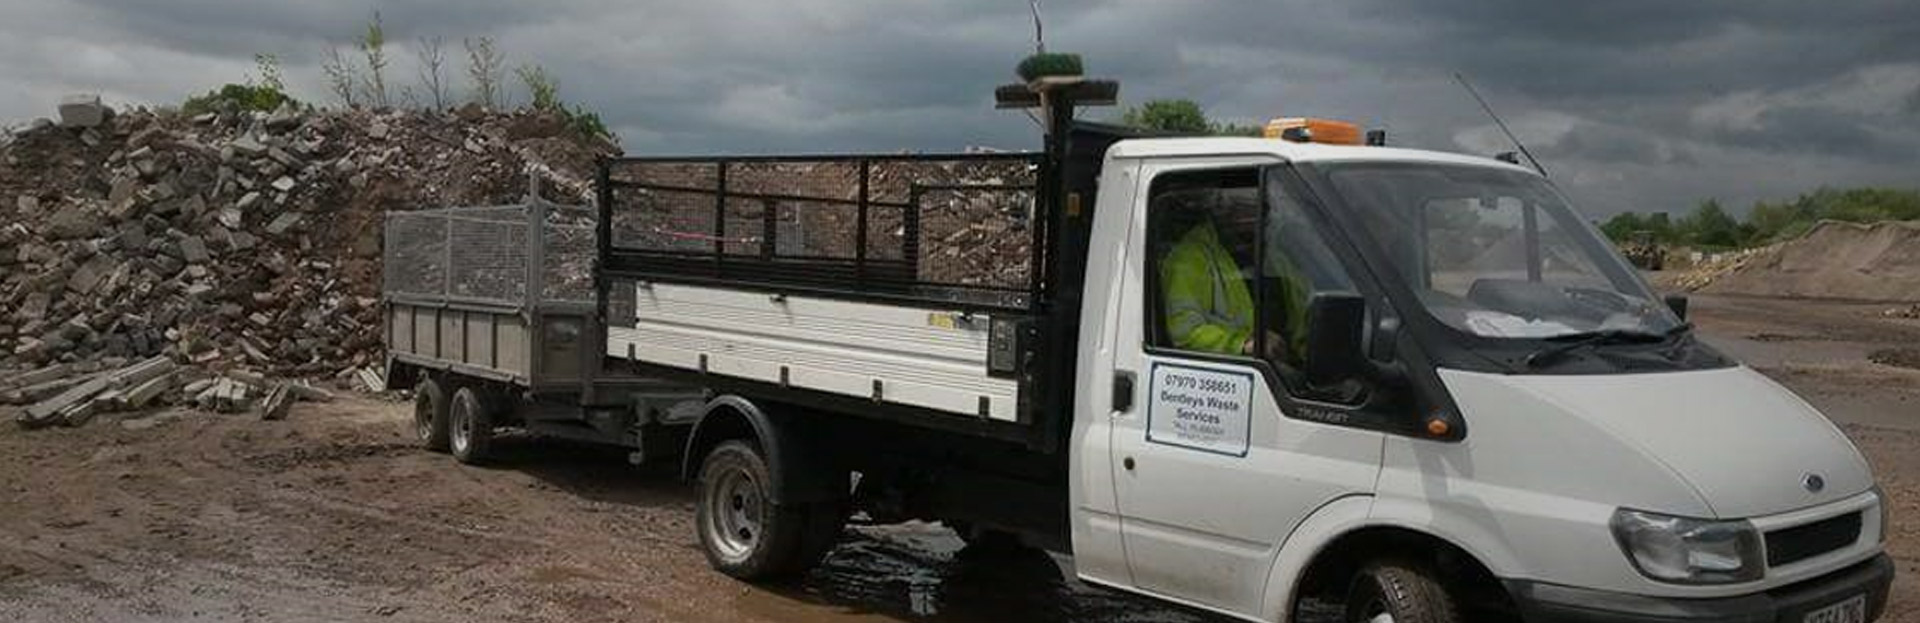 All aspects of waste collection